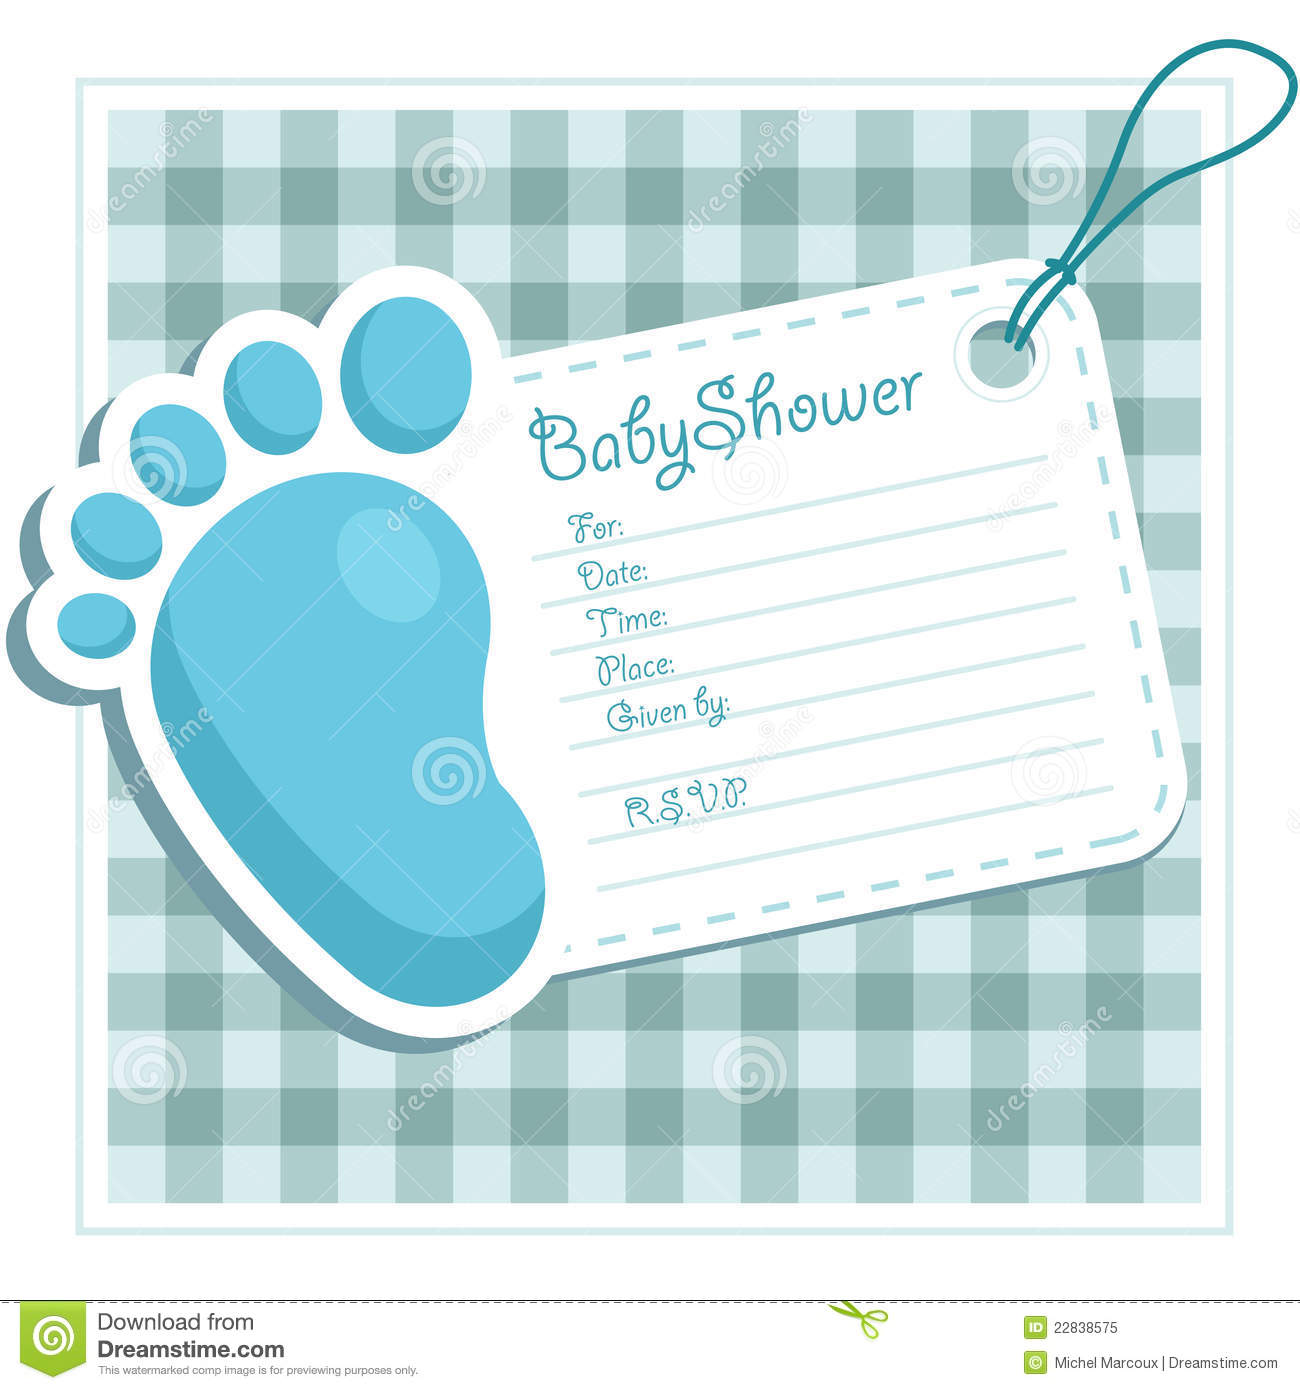 baby shower invitation royalty free stock photo image blue baby booties clipart baby booties clip art to color